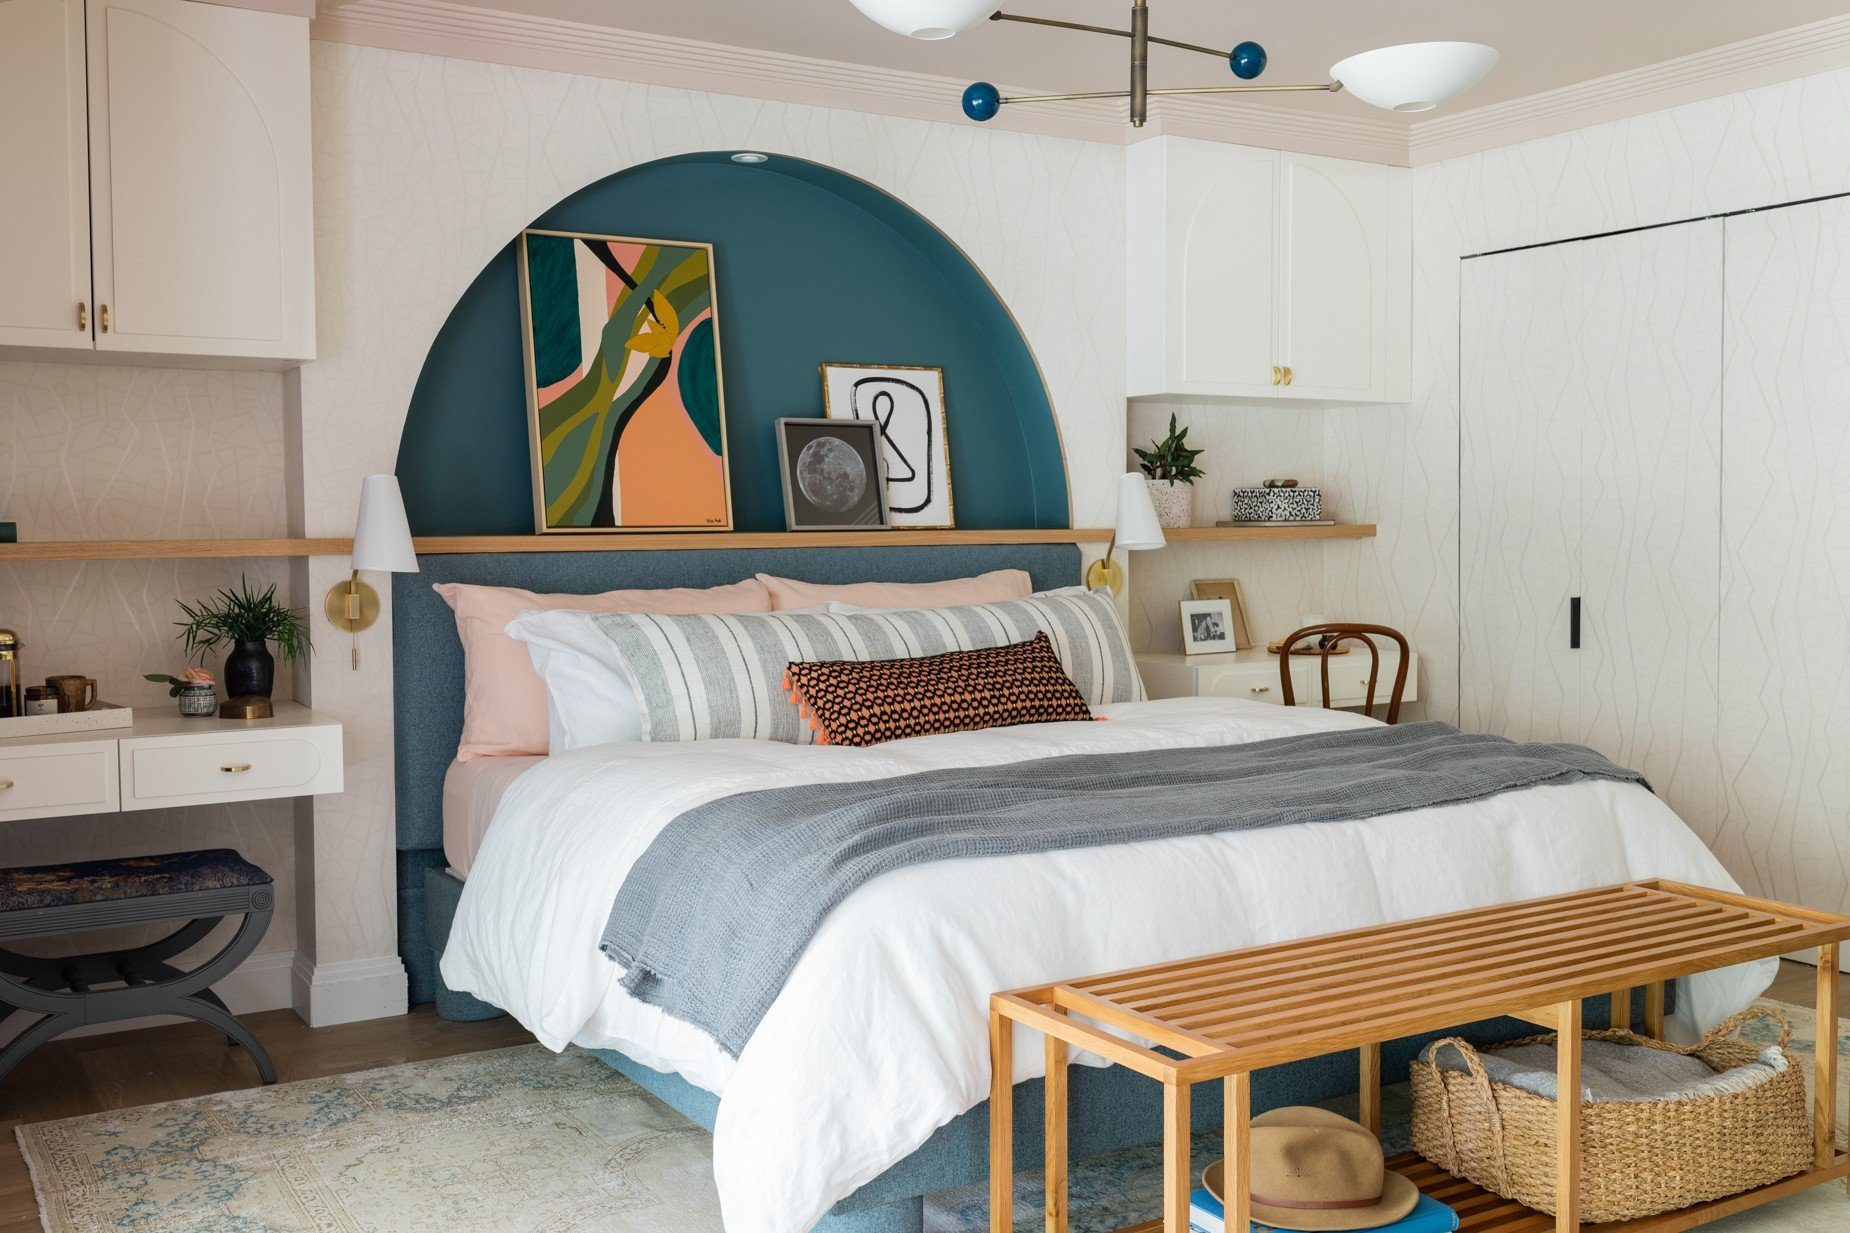 The 5 Paint Tricks You Need (To Add Interest To Your Space) - Bobby Berk